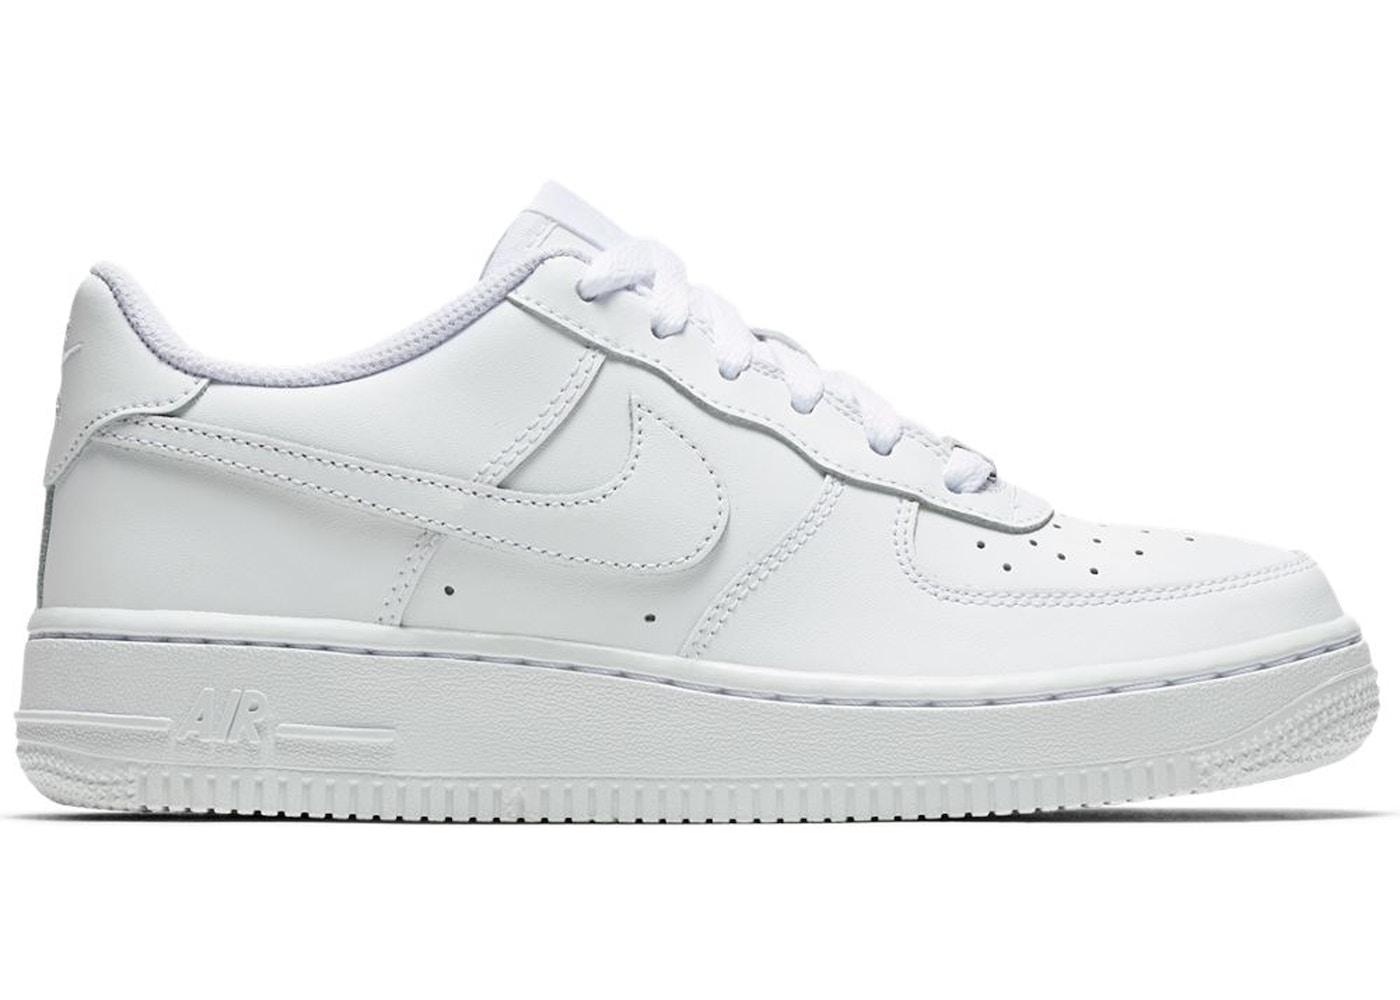 86138 56351 Buy Nike Air Force 1 Shoes Deadstock Sneakers hot new products  ... 7dcca83c7e45